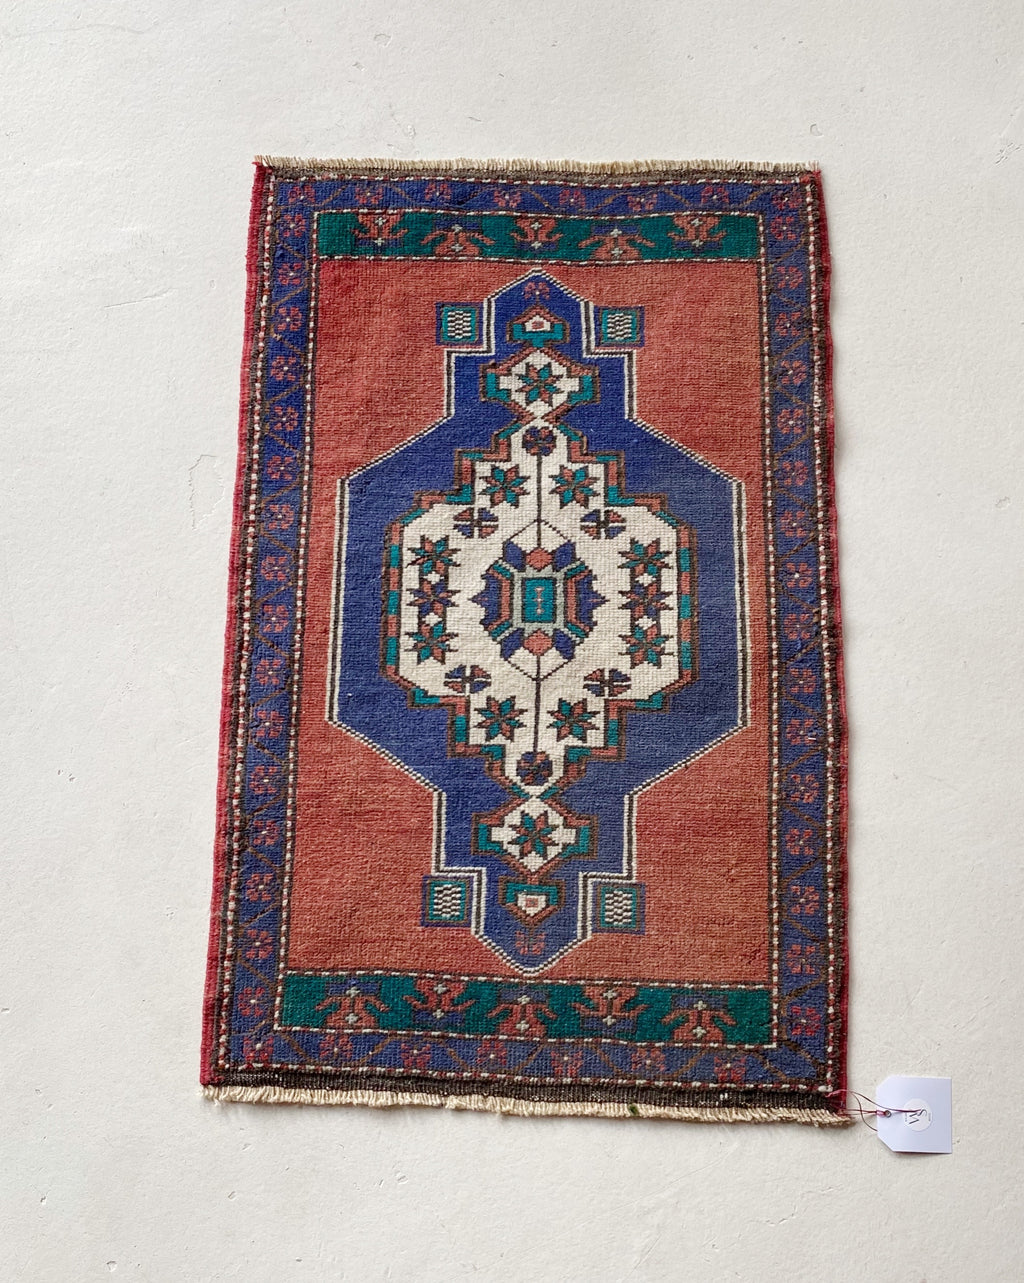 Small doormat size Turkish rug, pile rug, Turkish rug, vintage rug, portland, rug shop, bright colors, wild shaman, area rug, red rug, mini rug, bold color, Portland, Oregon, rug store, rug shop, local shop, flat weave, kilim rug